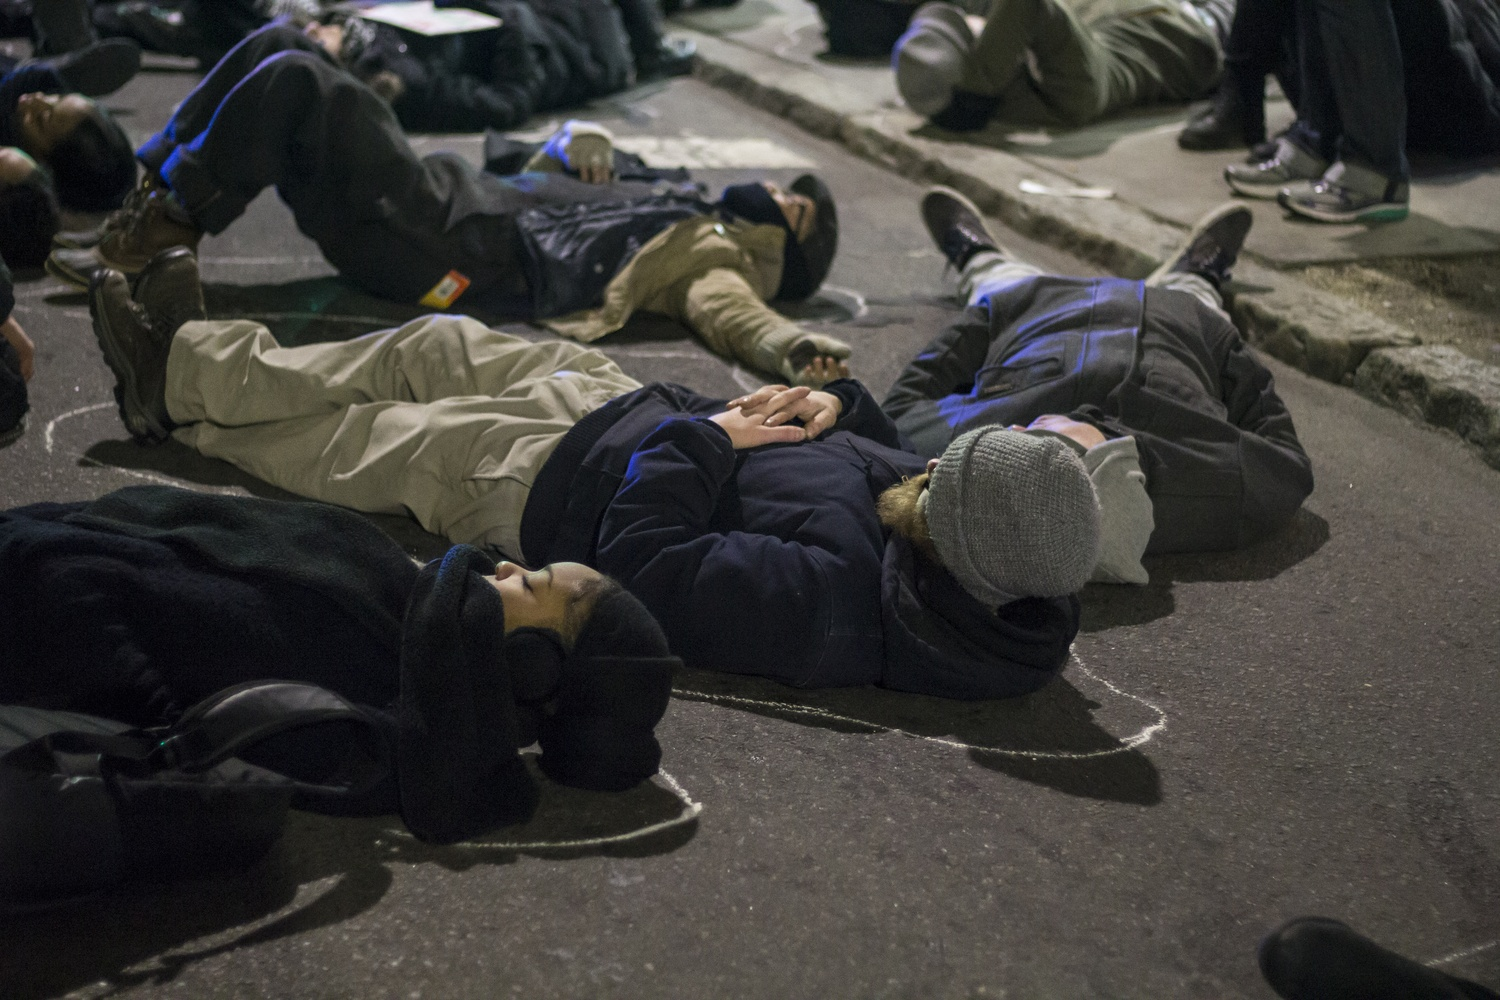 Protest participants lay in the street after having chalk outlines drawn around their bodies during a second die-in during a protest in Cambridge on Wednesday evening. The chalk alludes to the outline law enforcement officers traced around Michael Brown's body.